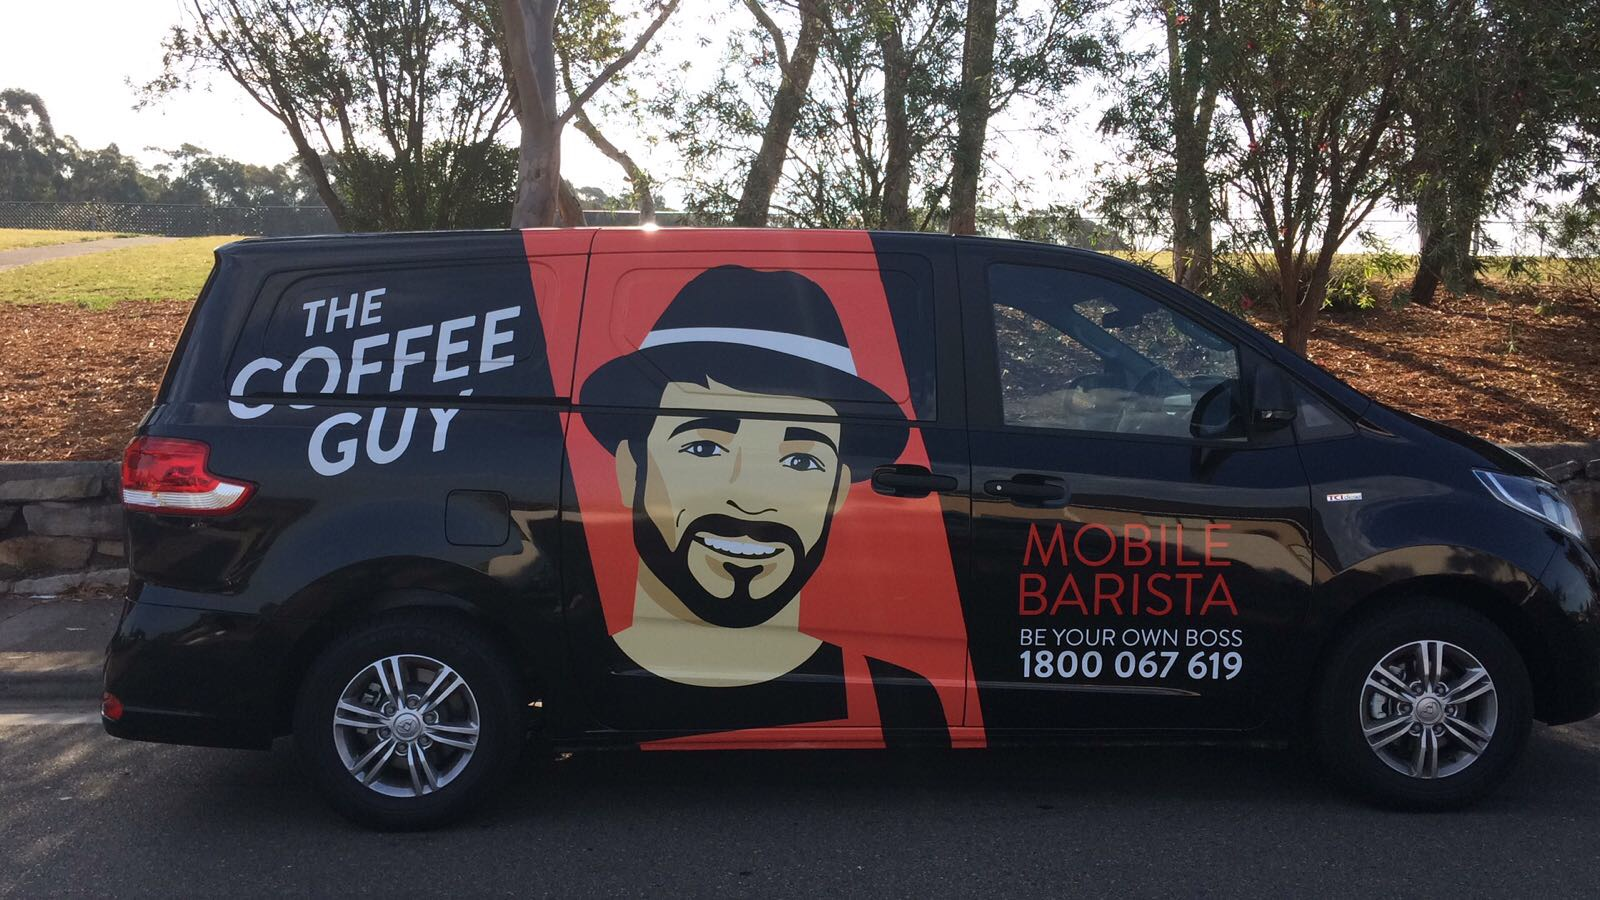 Be That Coffee Guy! NEW Coffee Guy mobile franchise available in ACT!